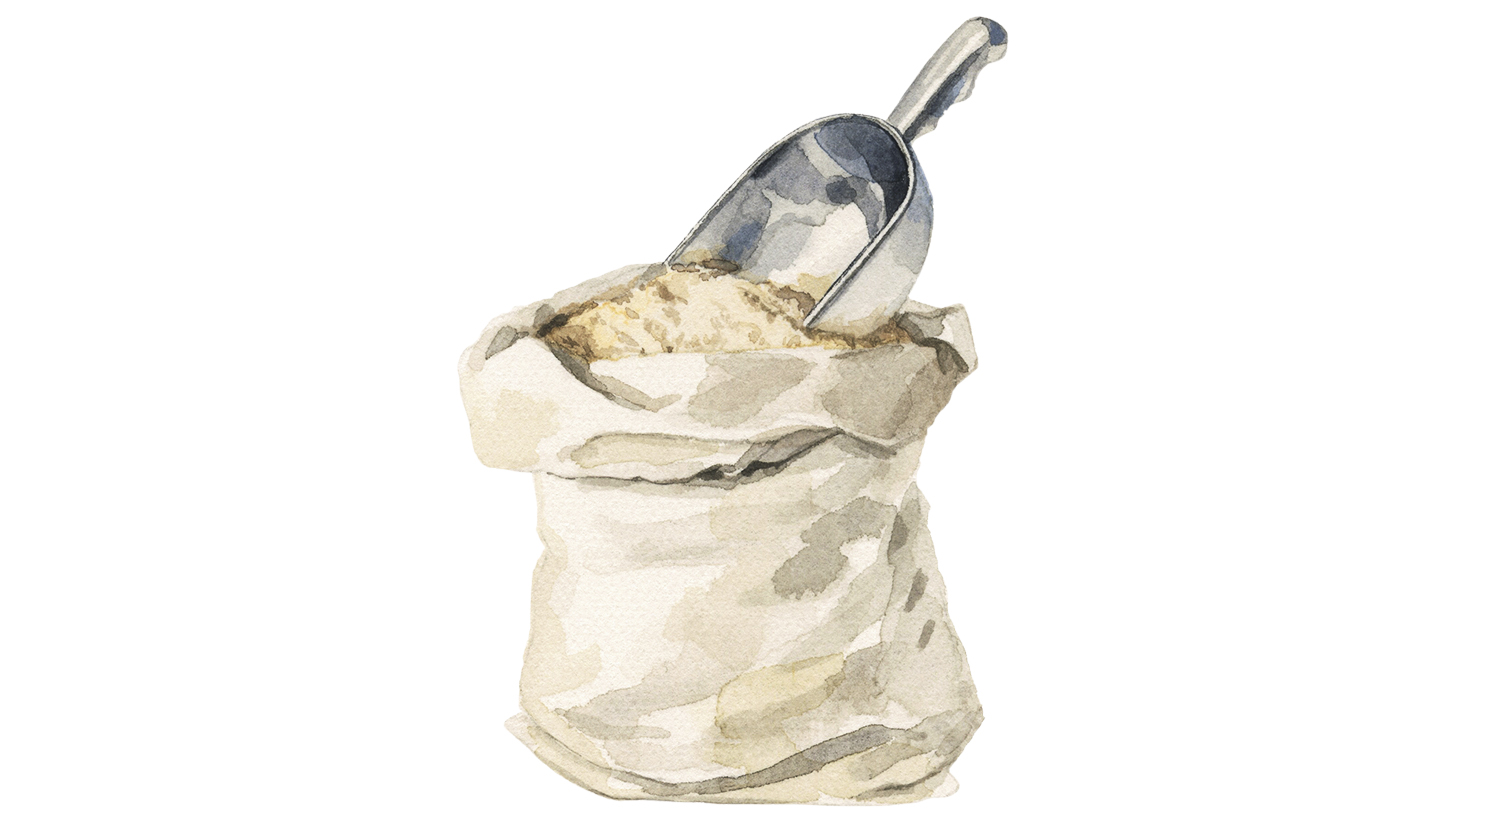 bag-flour-scoop